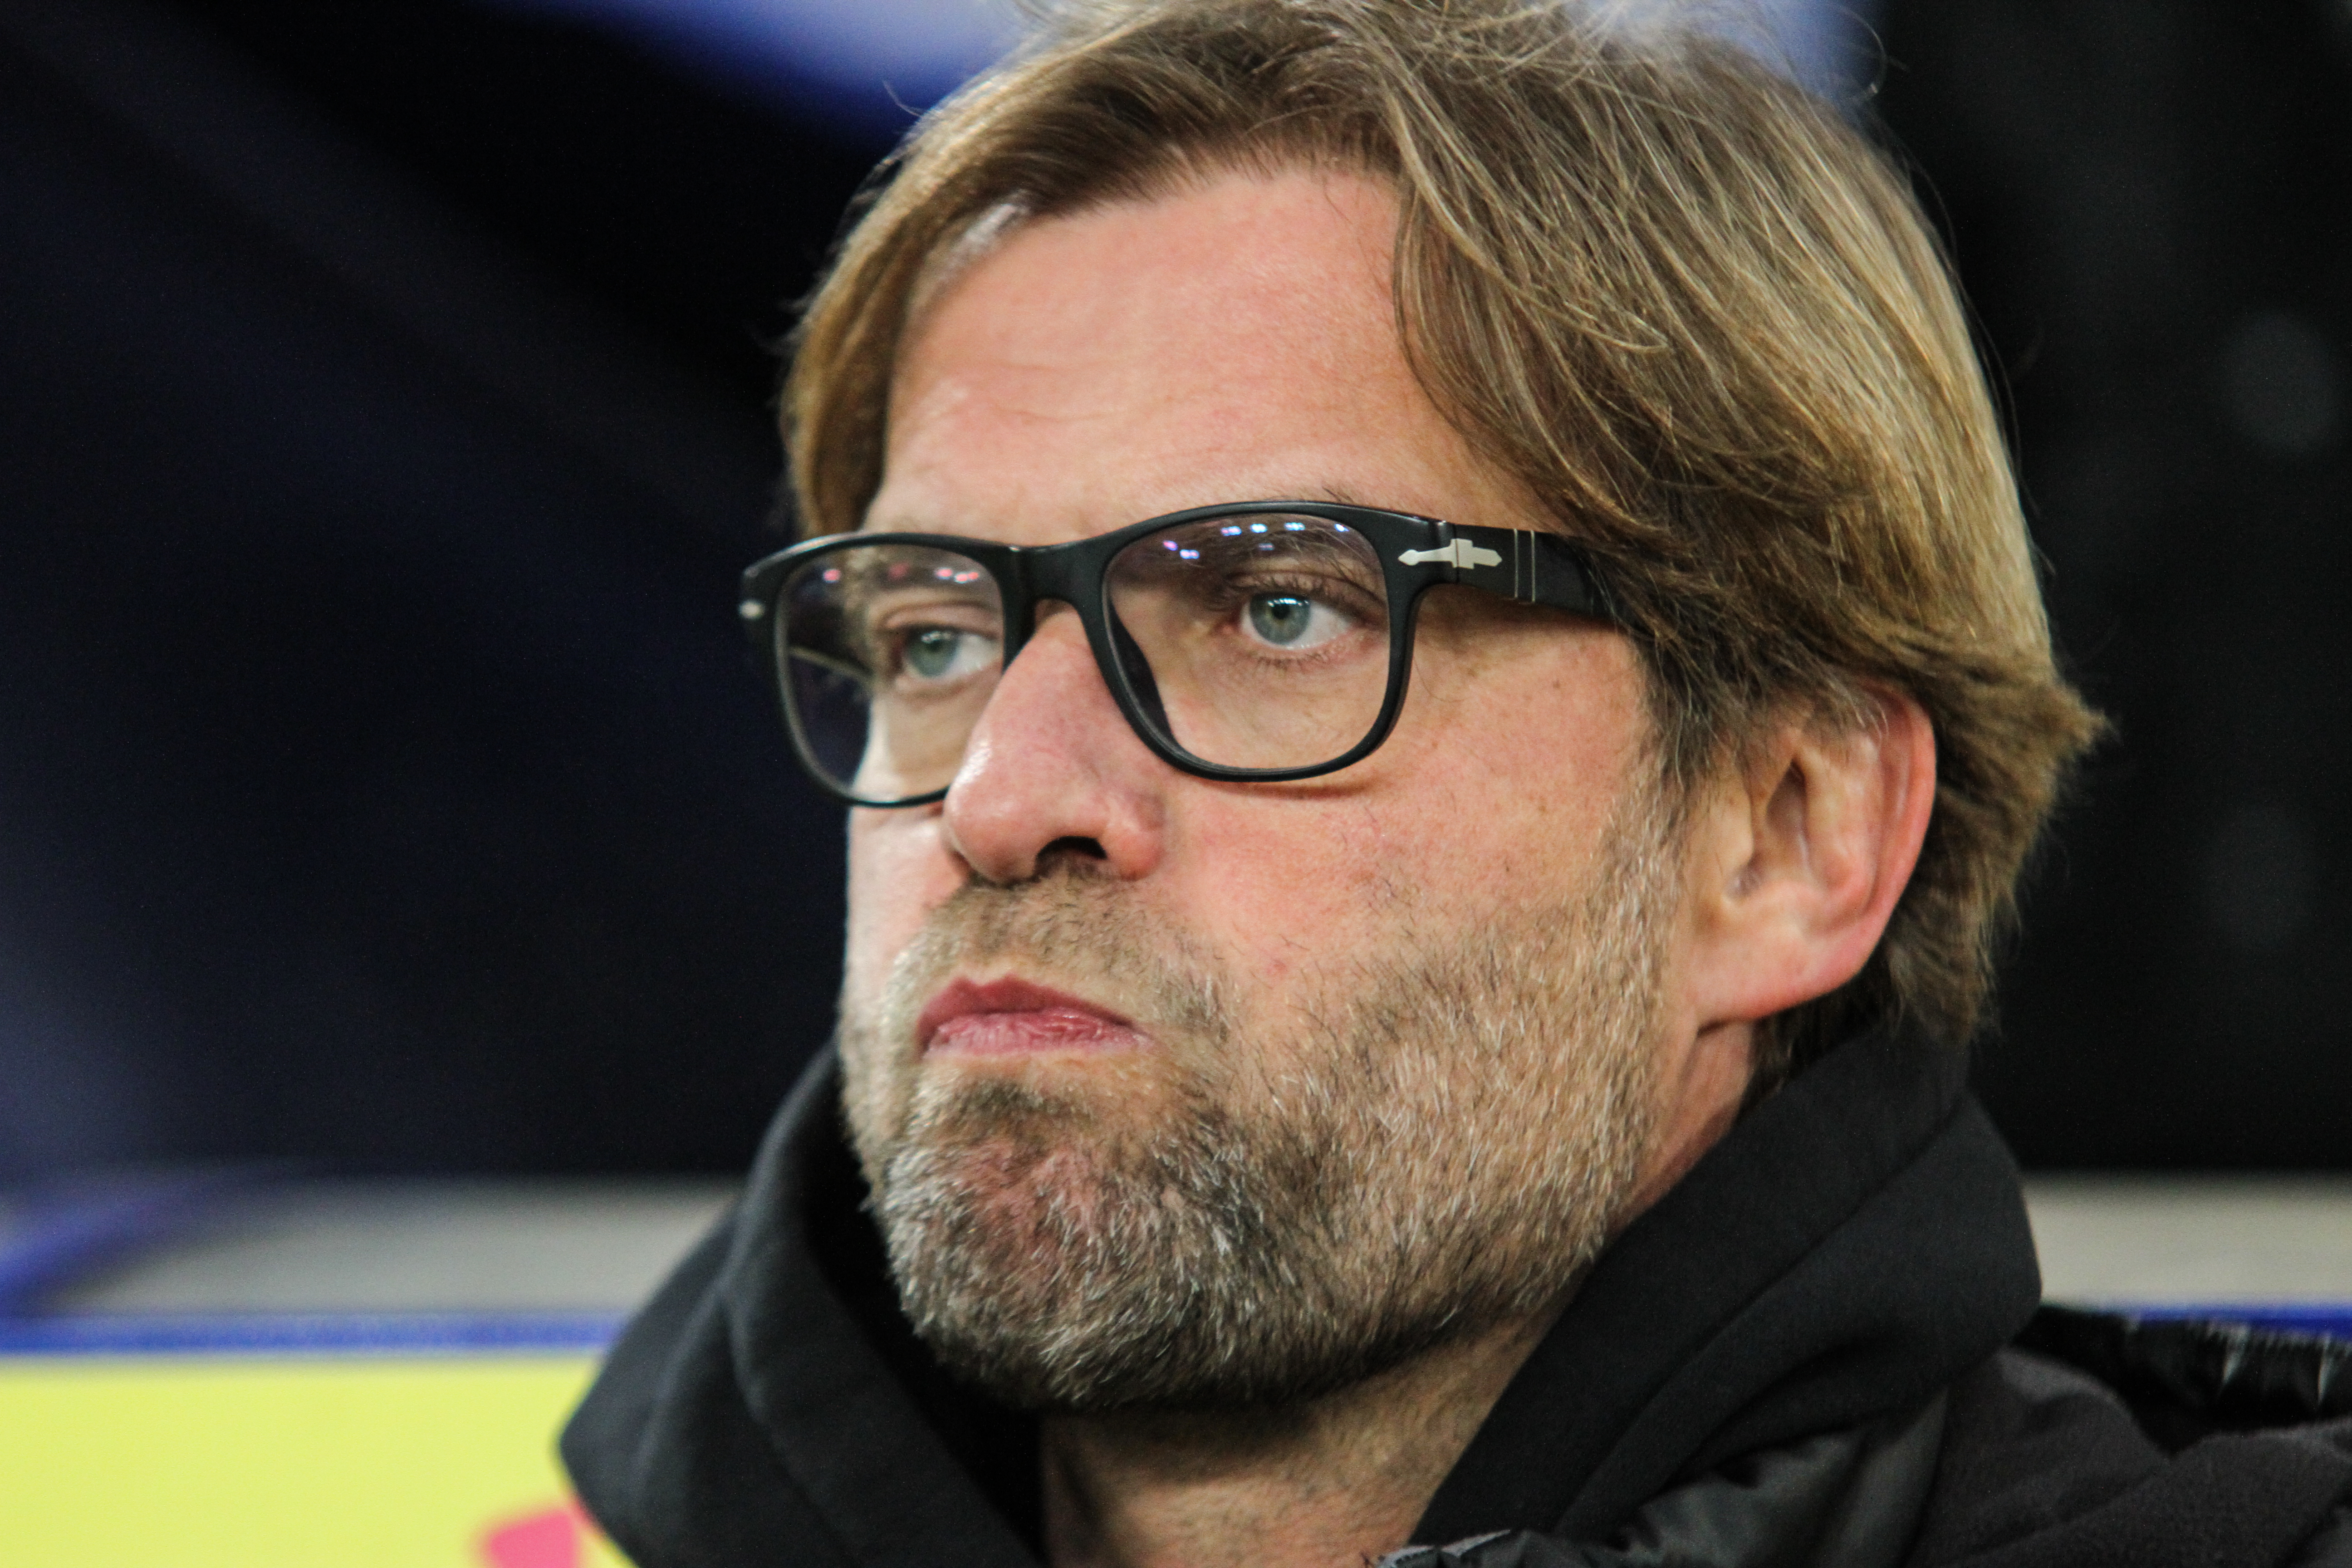 Klopp needs to stop whining…